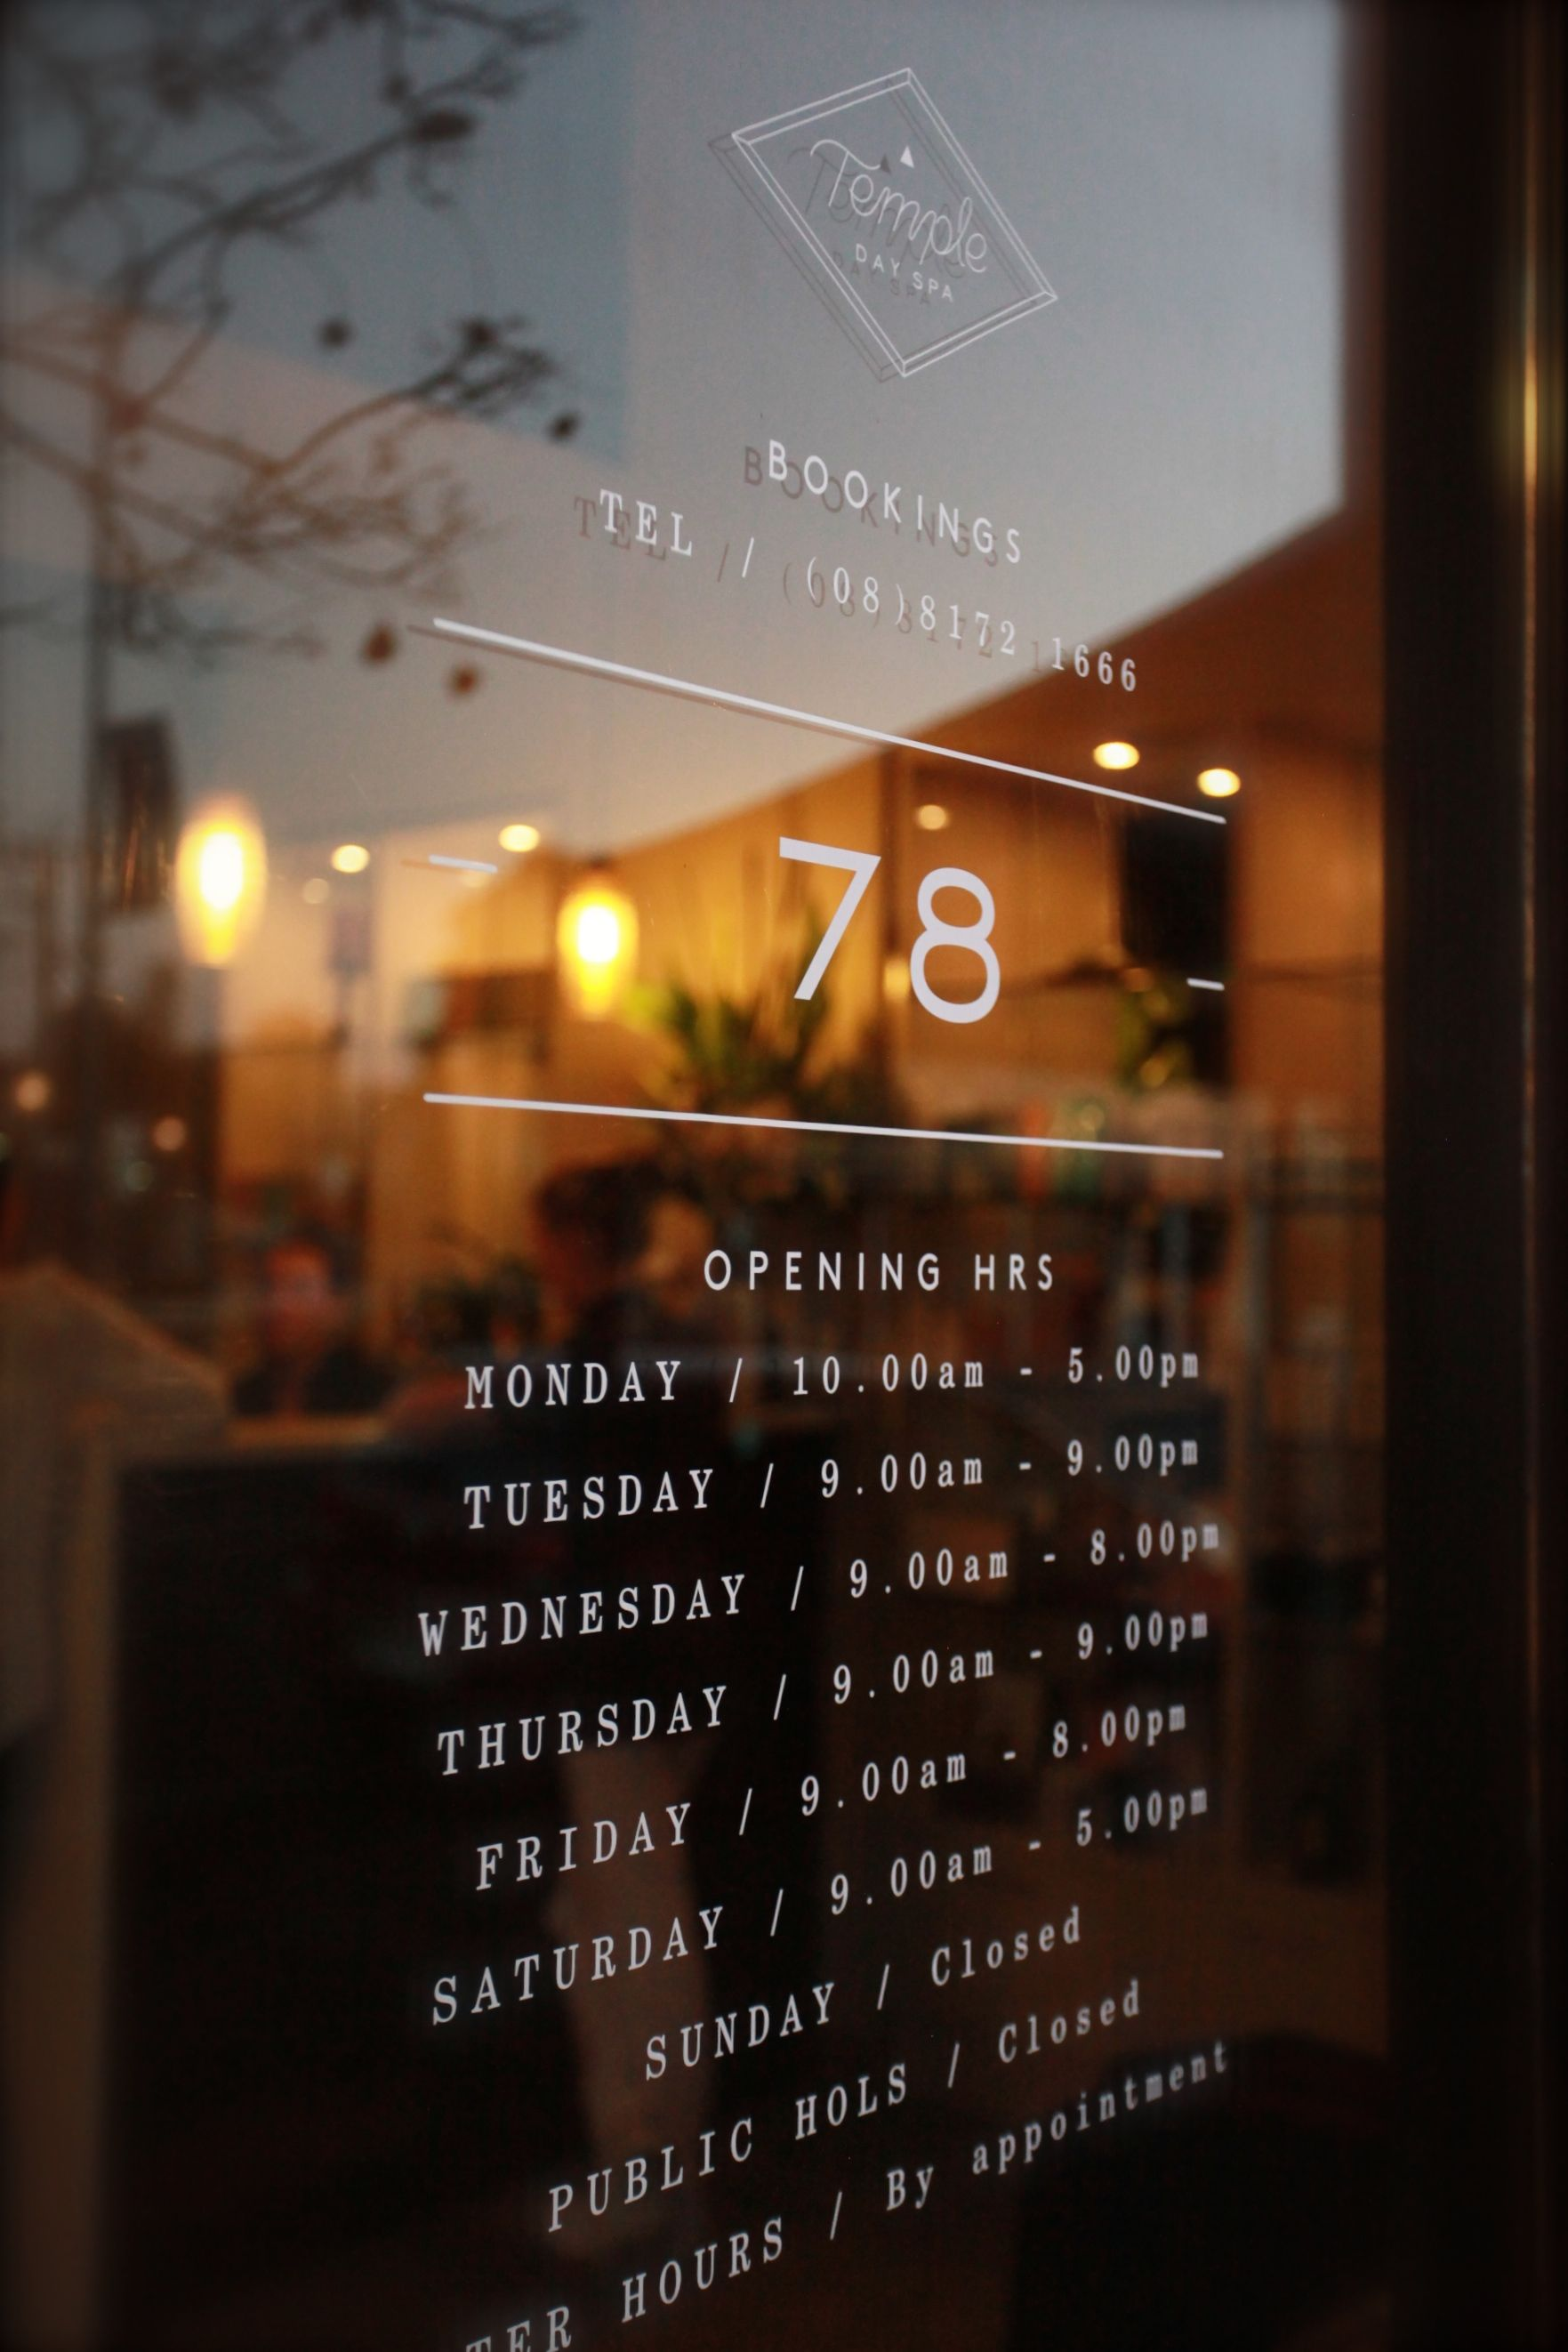 Exterior glass doors business - Opening Hours Signage On Glass Entry Doors To Temple Day Spa Adelaide